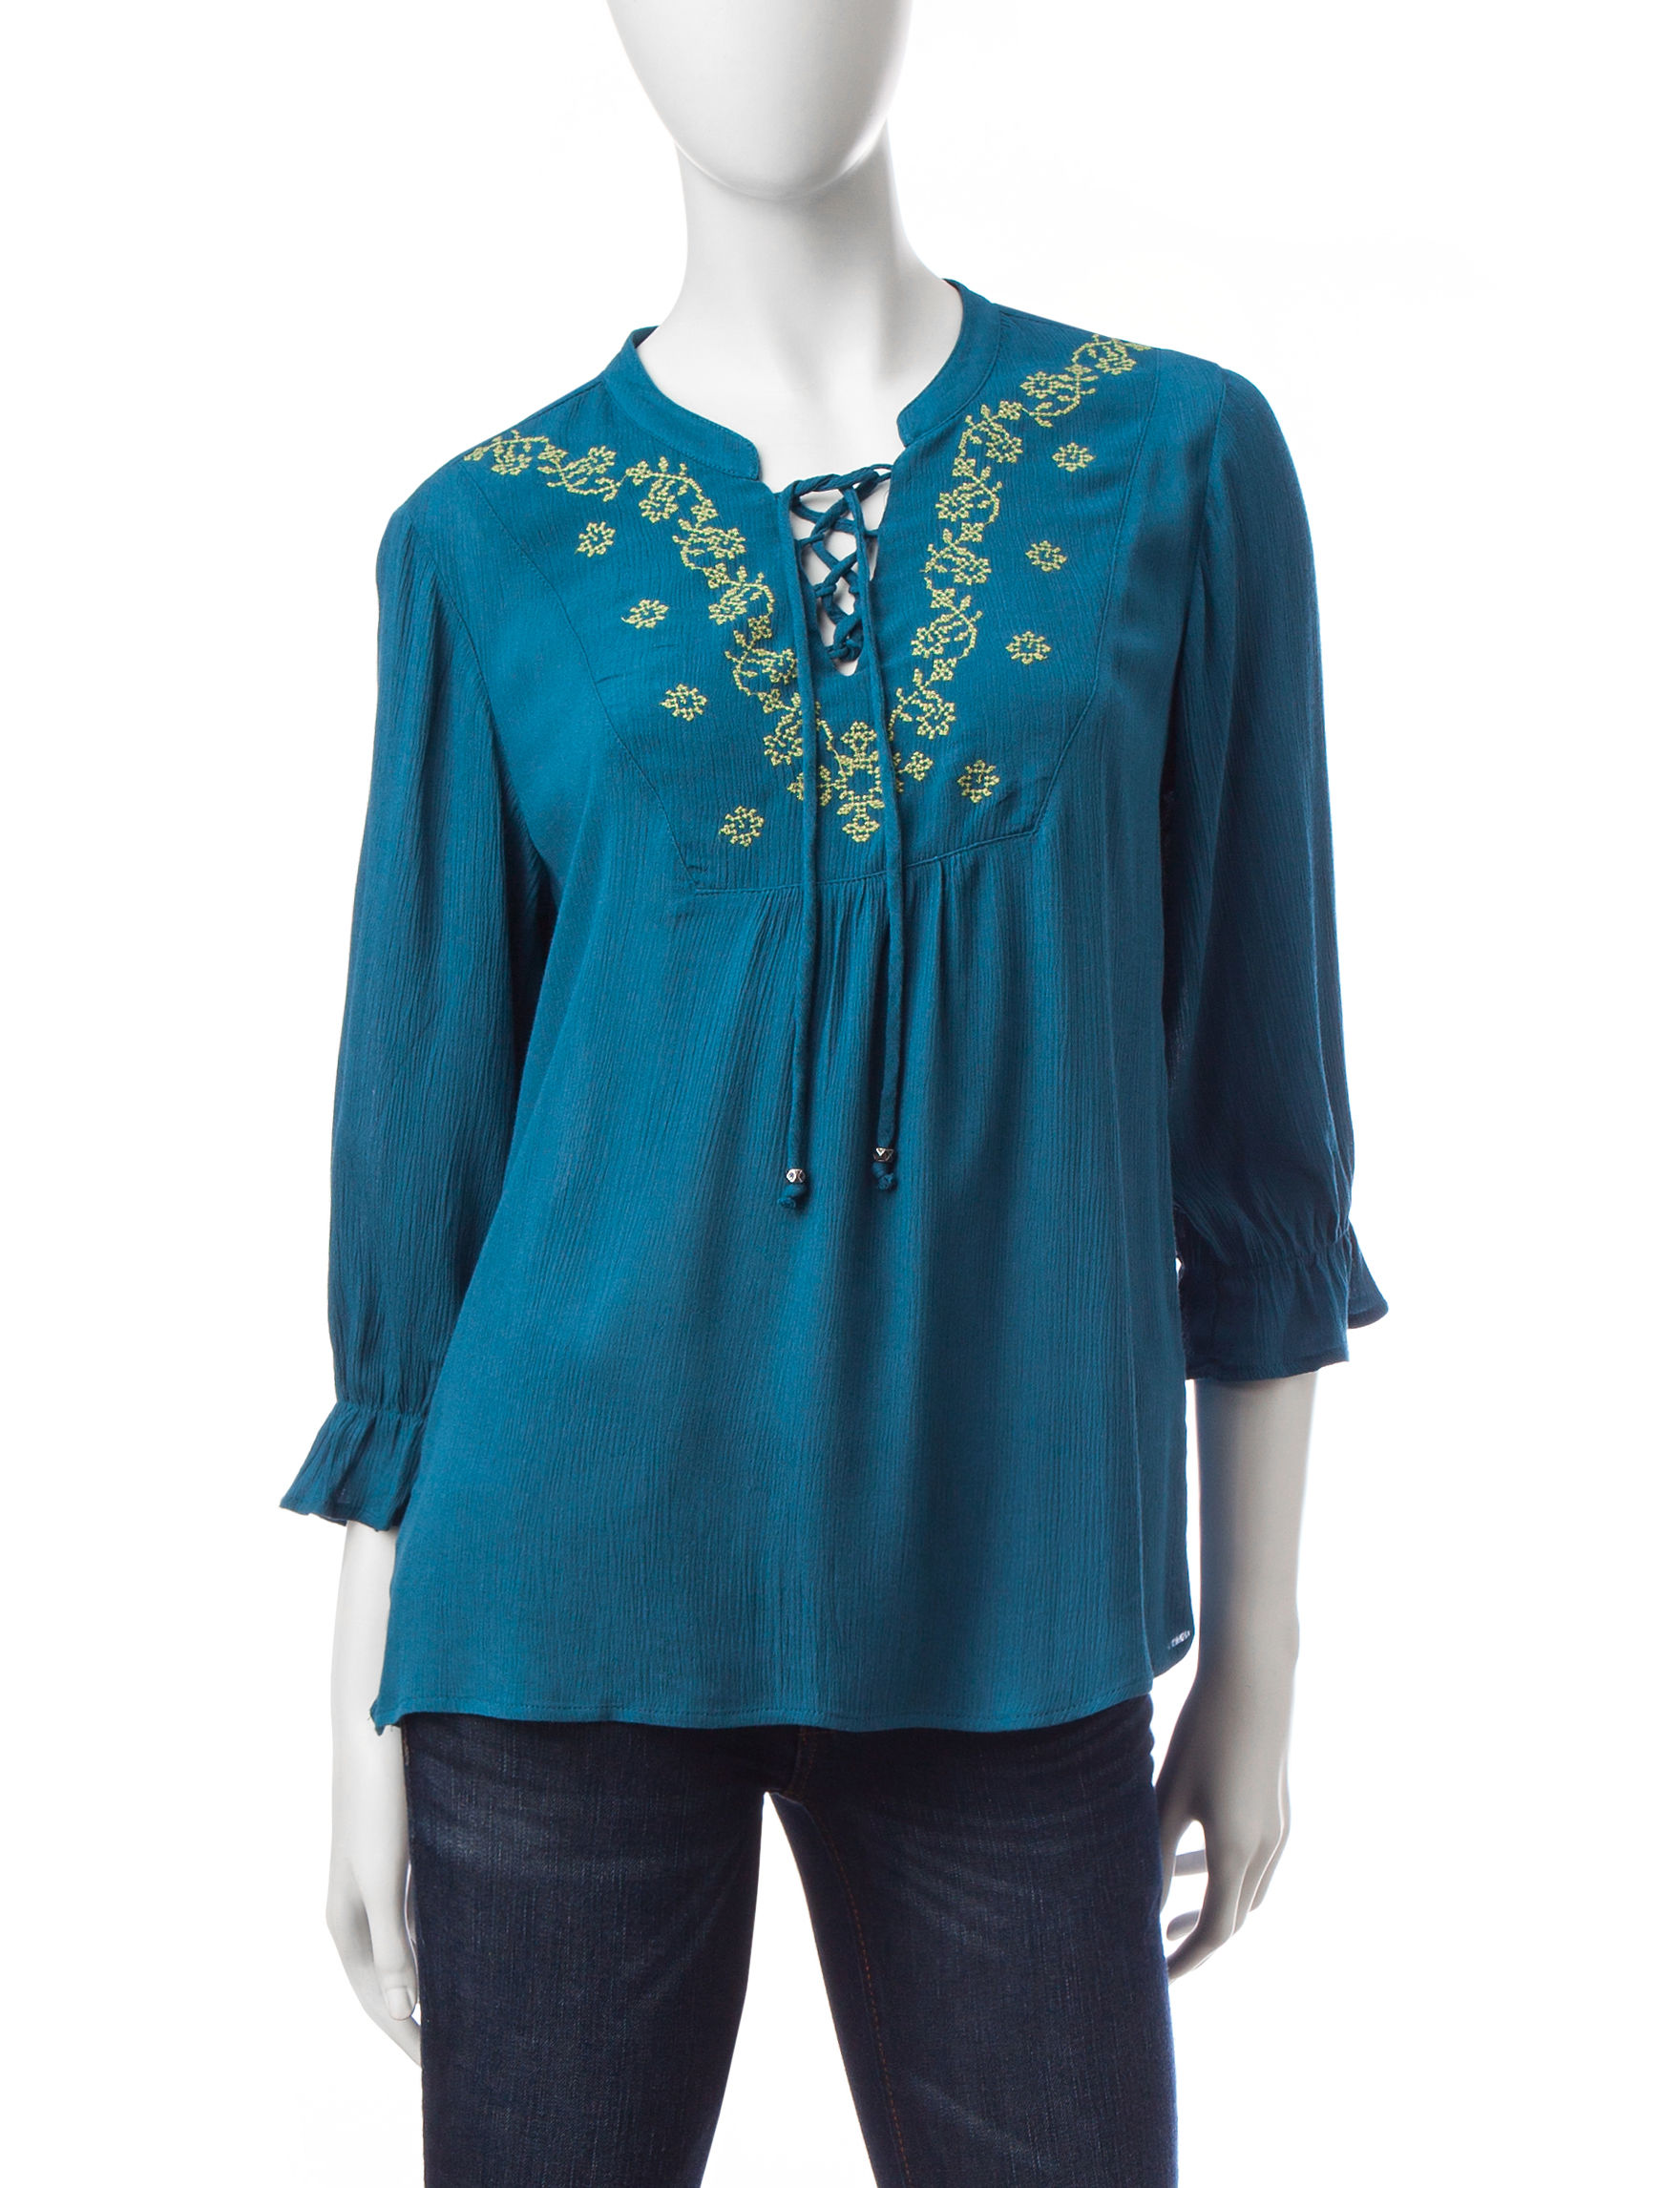 Energe Blue Shirts & Blouses